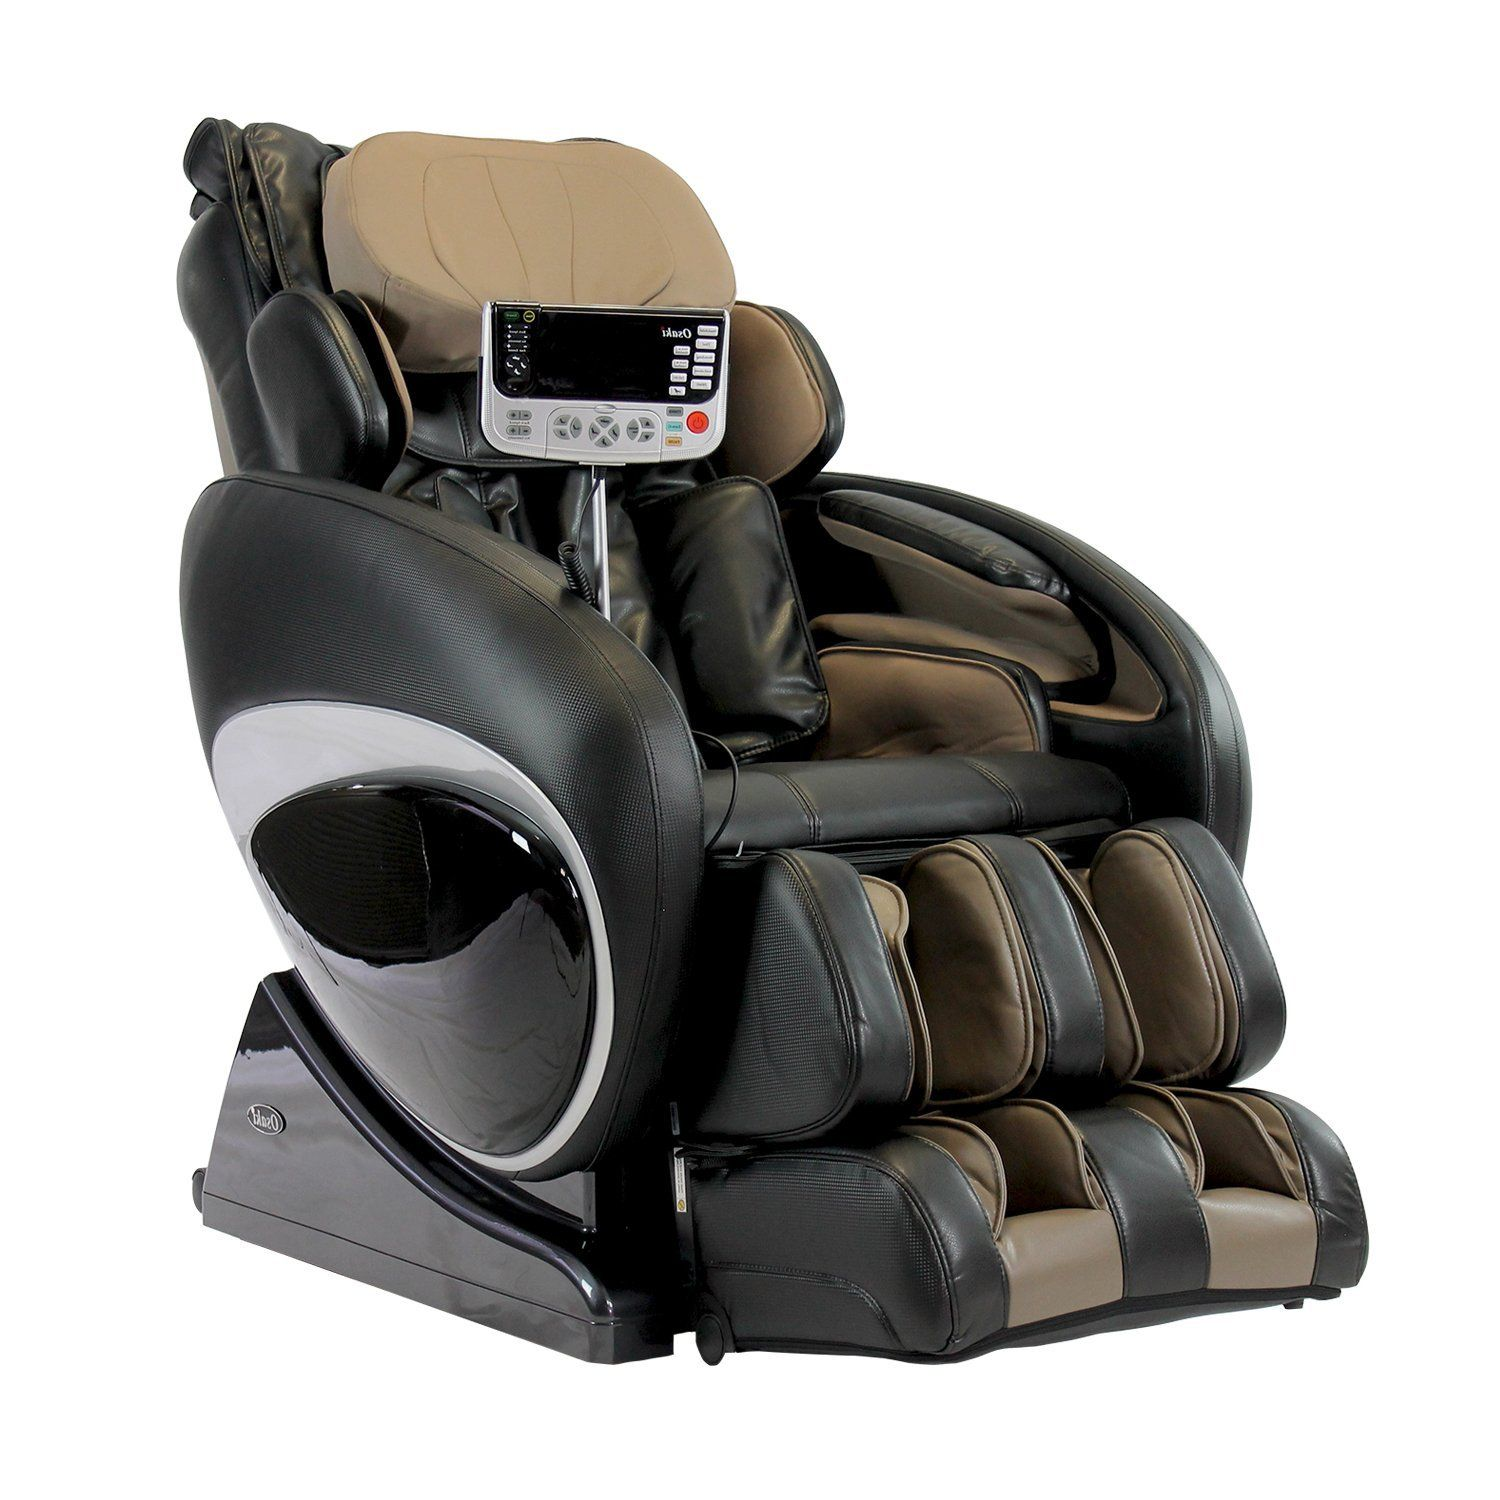 Osaki OS4000TA Model OS4000T Zero Gravity Massage Chair